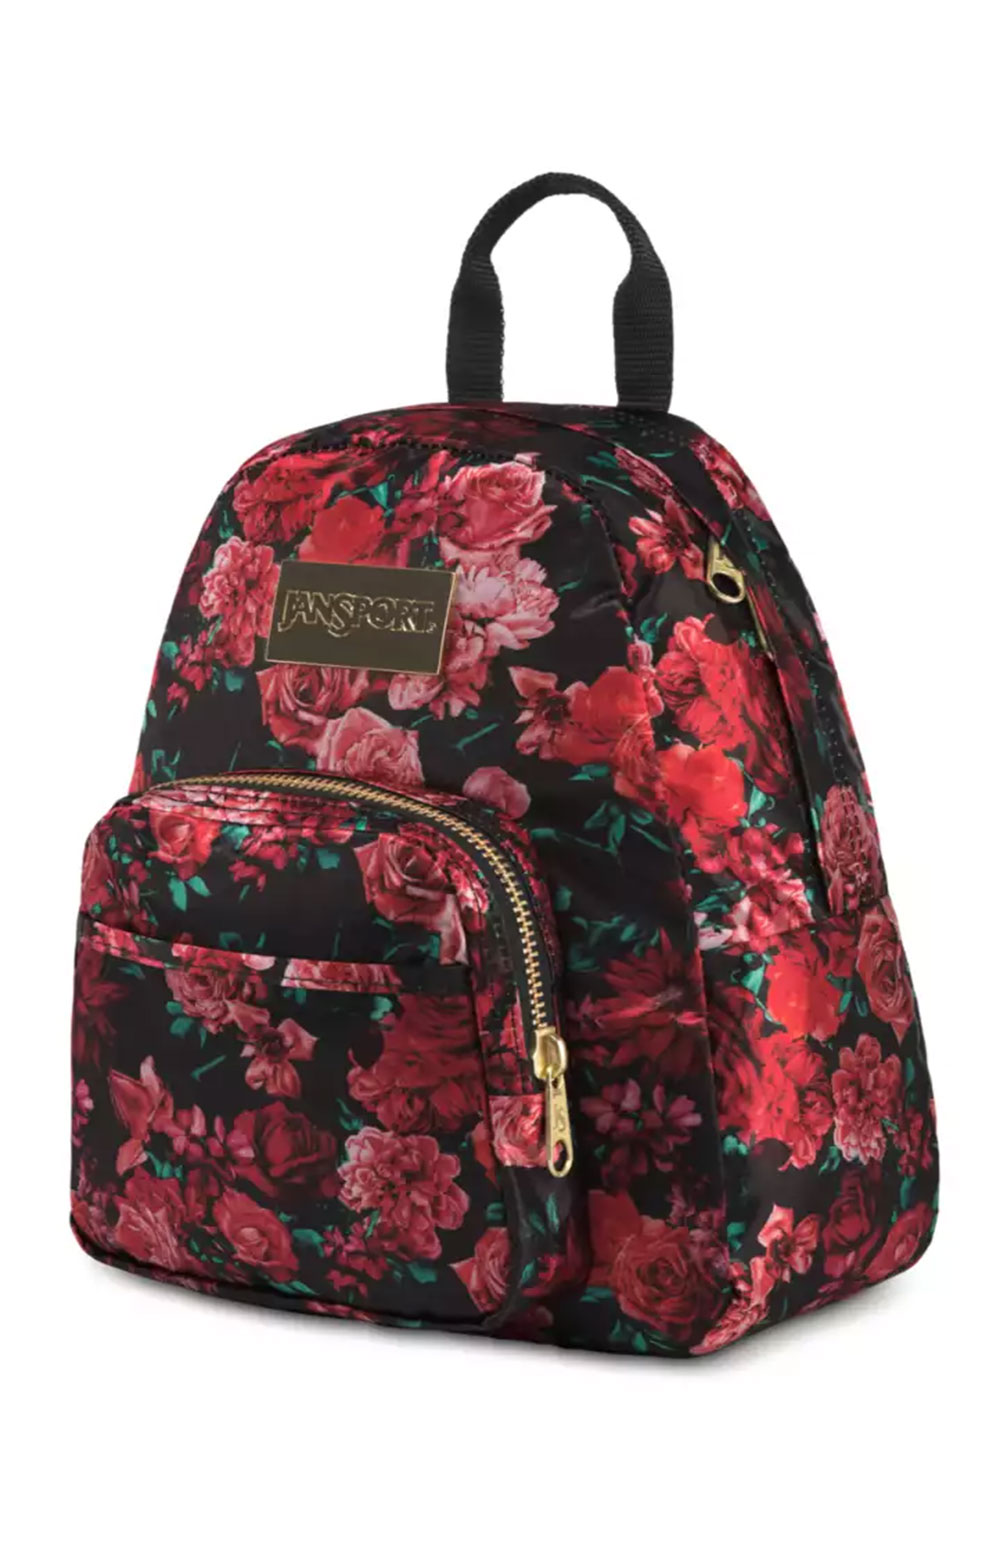 Half Pint Luxe Backpack - Luxe Rose 3